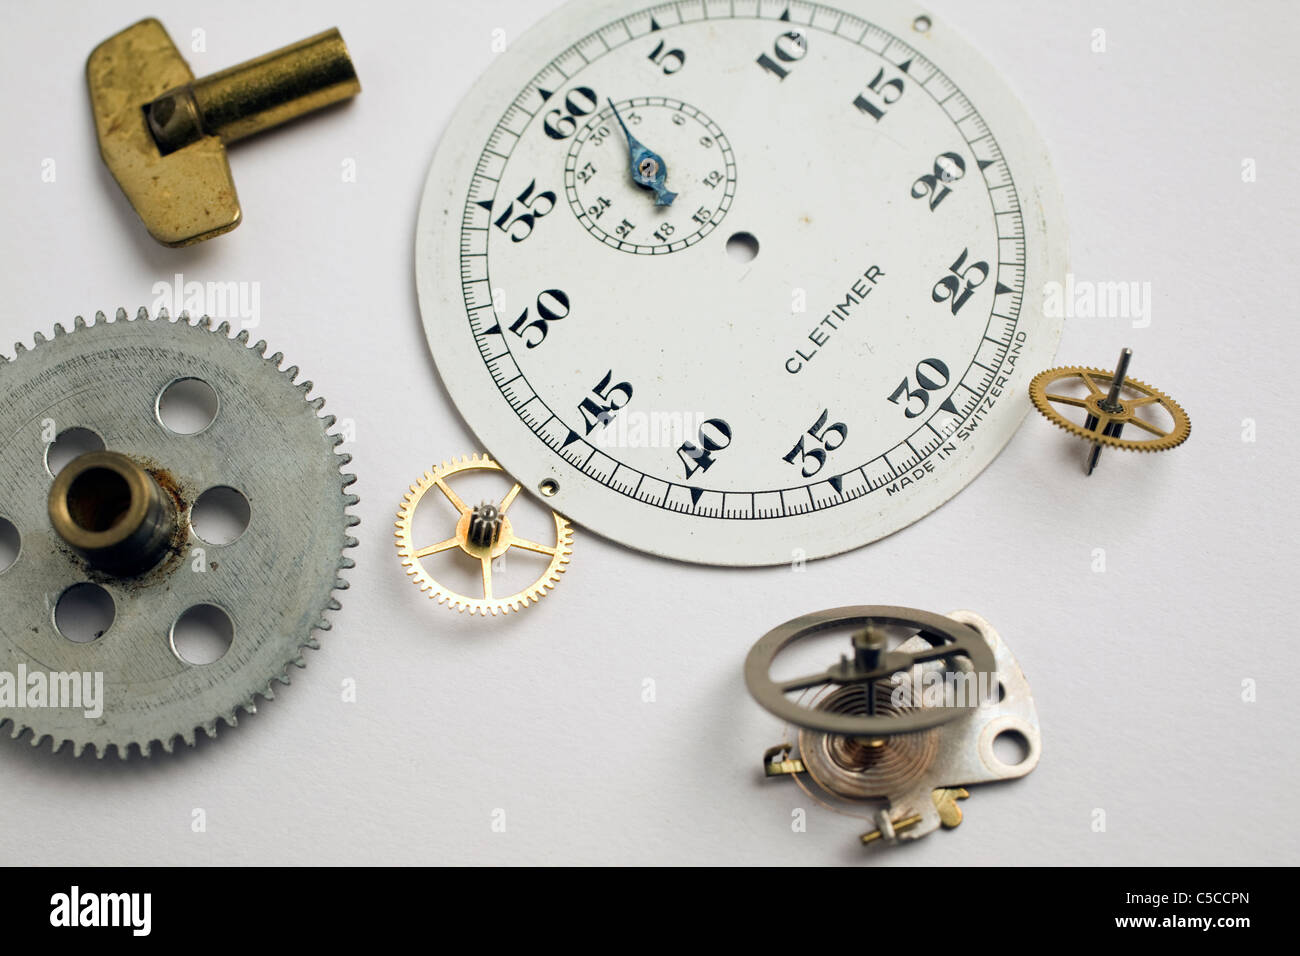 Clock parts sit on a white background. - Stock Image